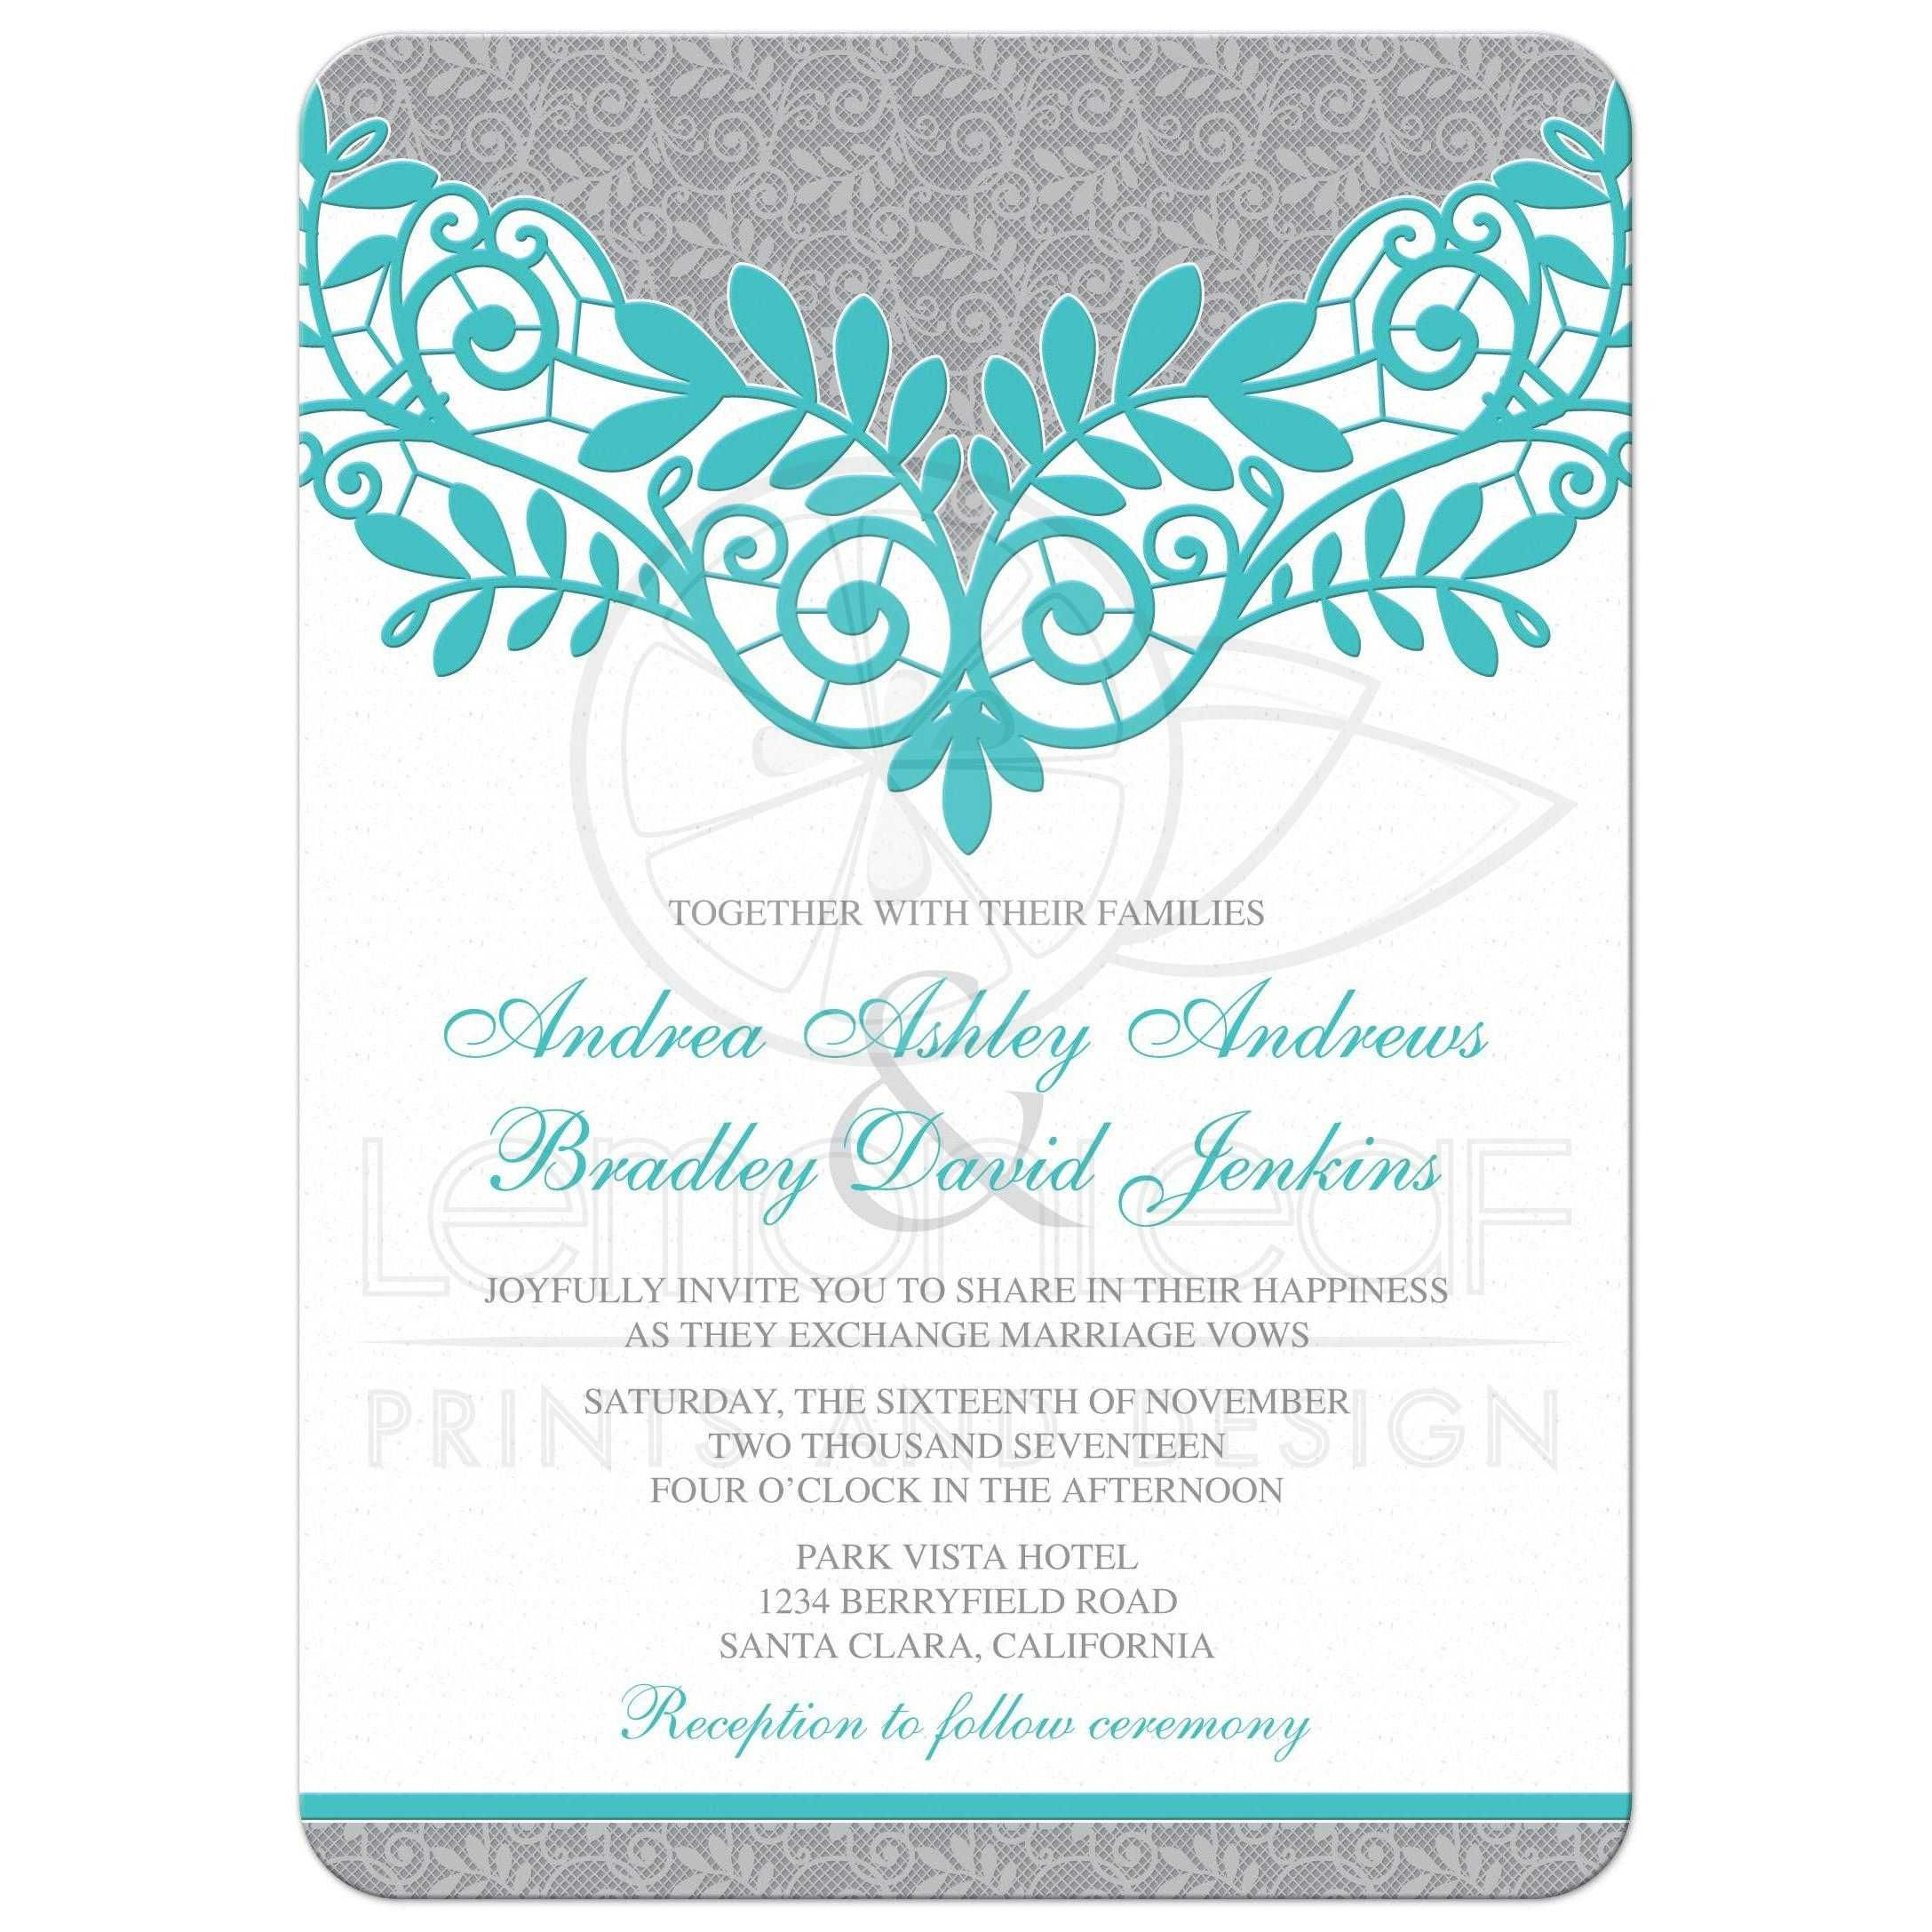 Turquoise Silver Wedding Invitation Silver Grey And Turquoise Lace Silver Wedding Invitations Silver Invitation Trendy Wedding Invitations